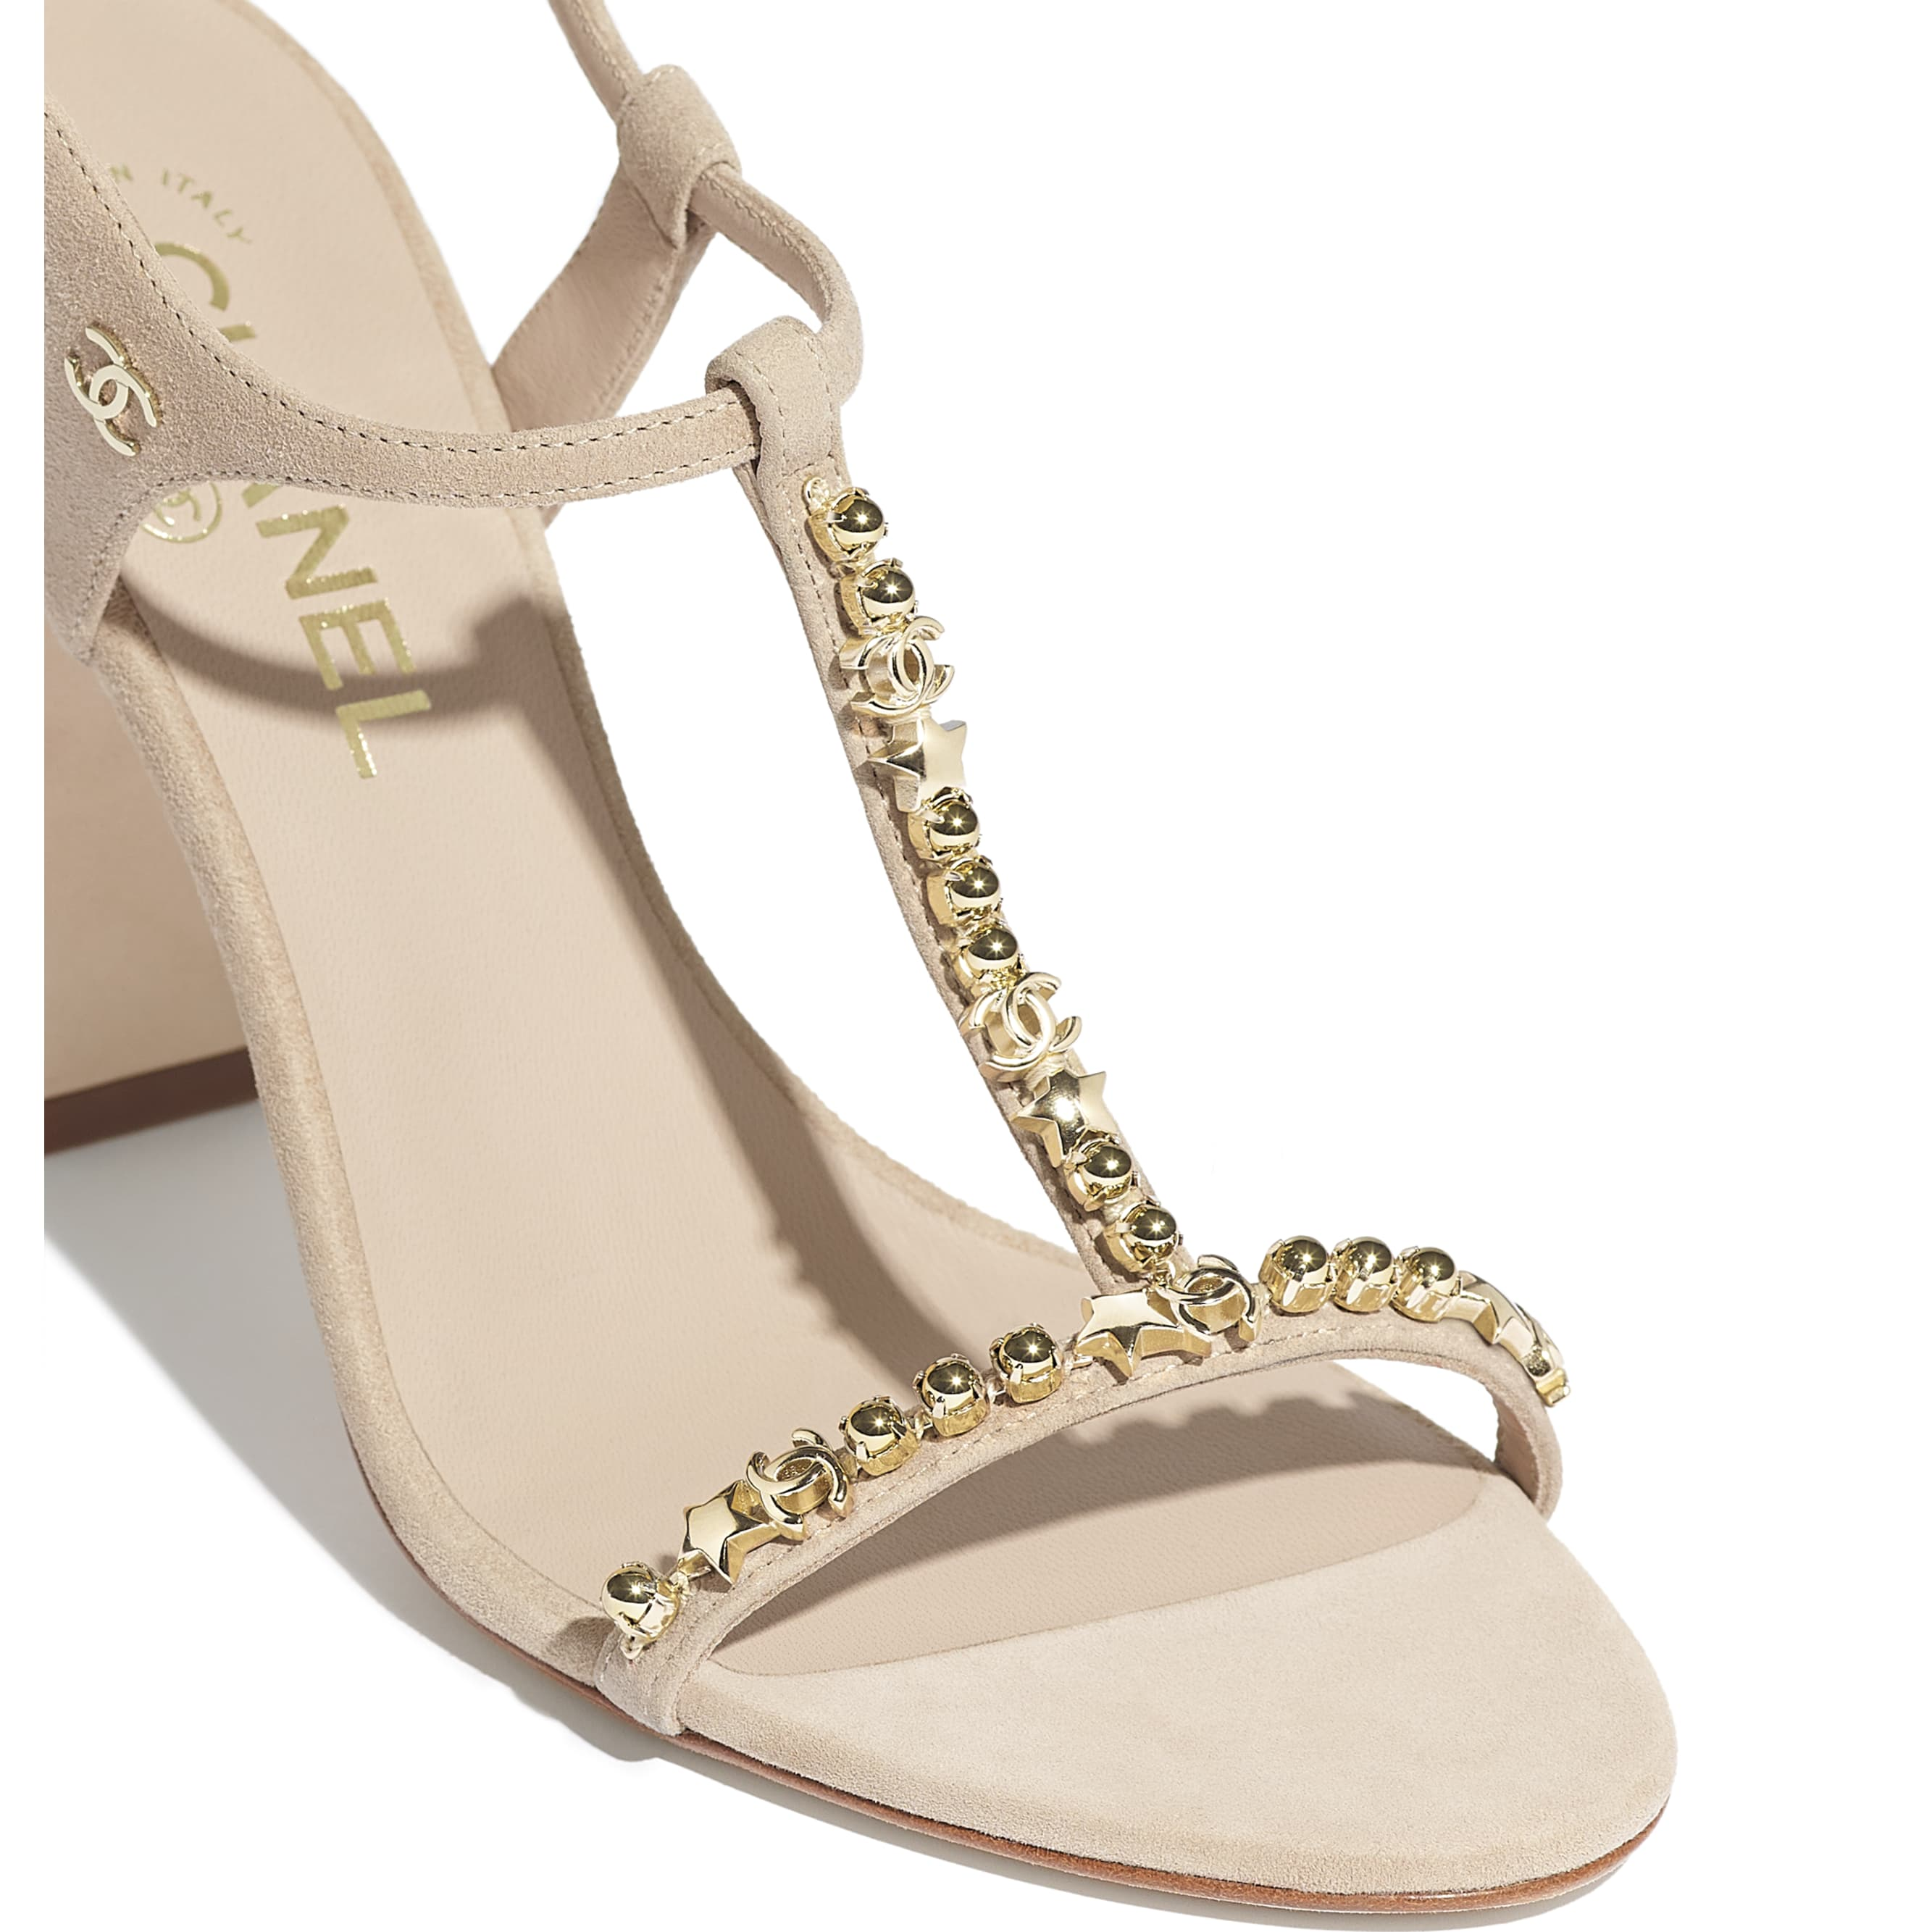 Sandals - Beige - Suede Kidskin & Metal - CHANEL - Extra view - see standard sized version